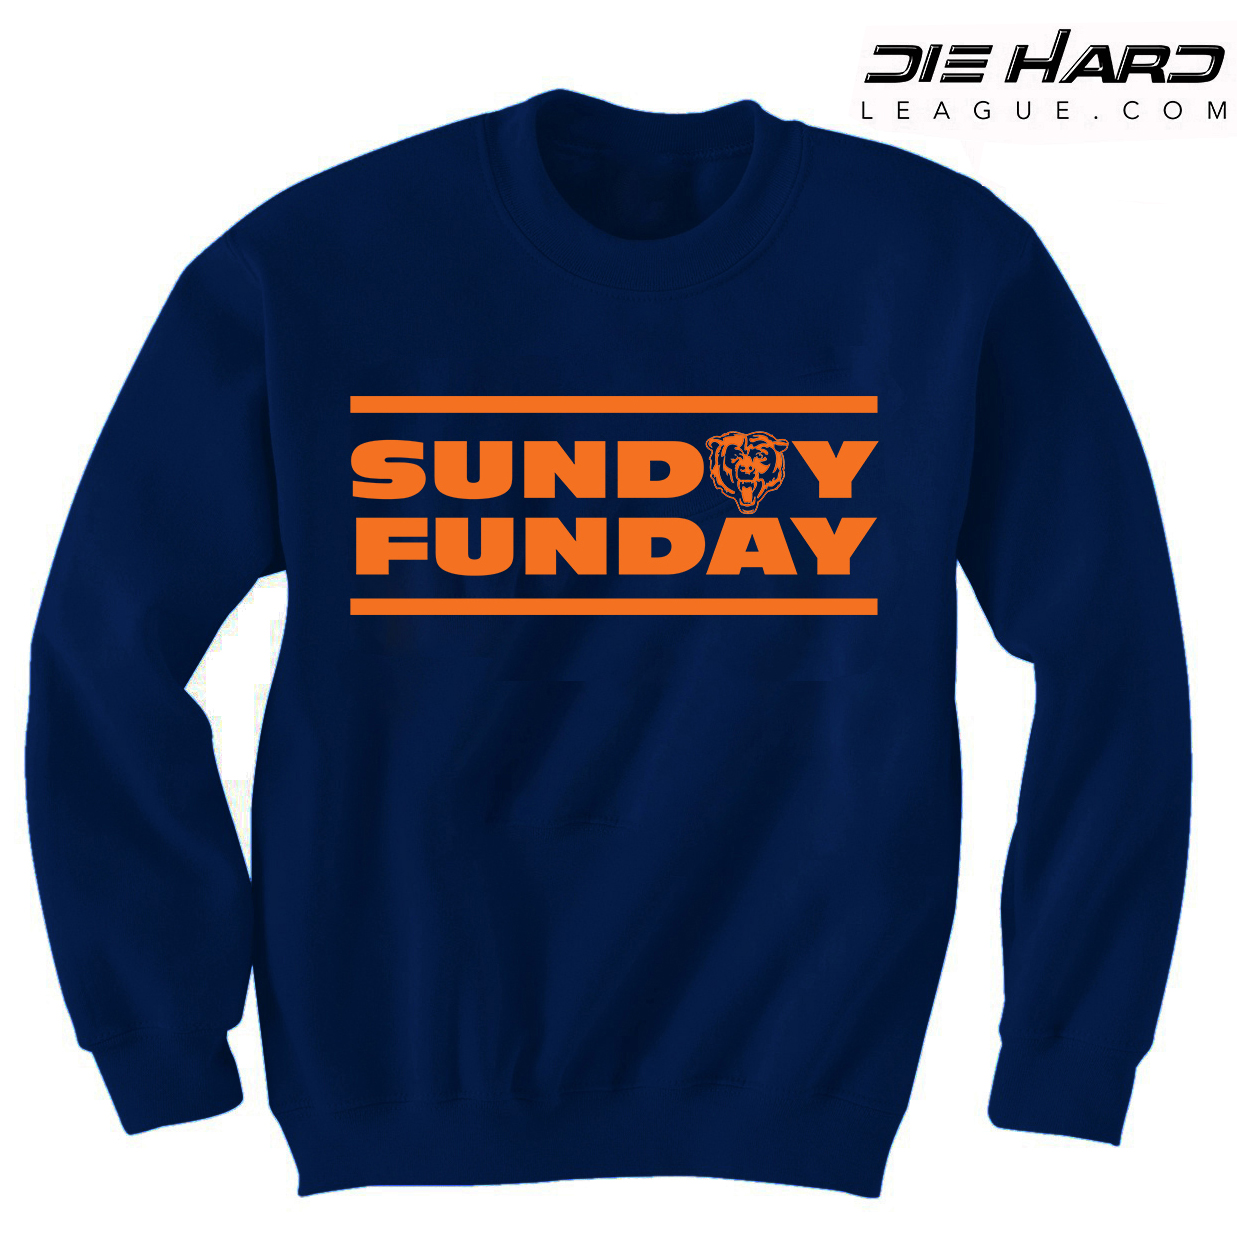 Chicago Bears Store - Sunday Funday Navy Sweatshirt  Best Deal  74e756542